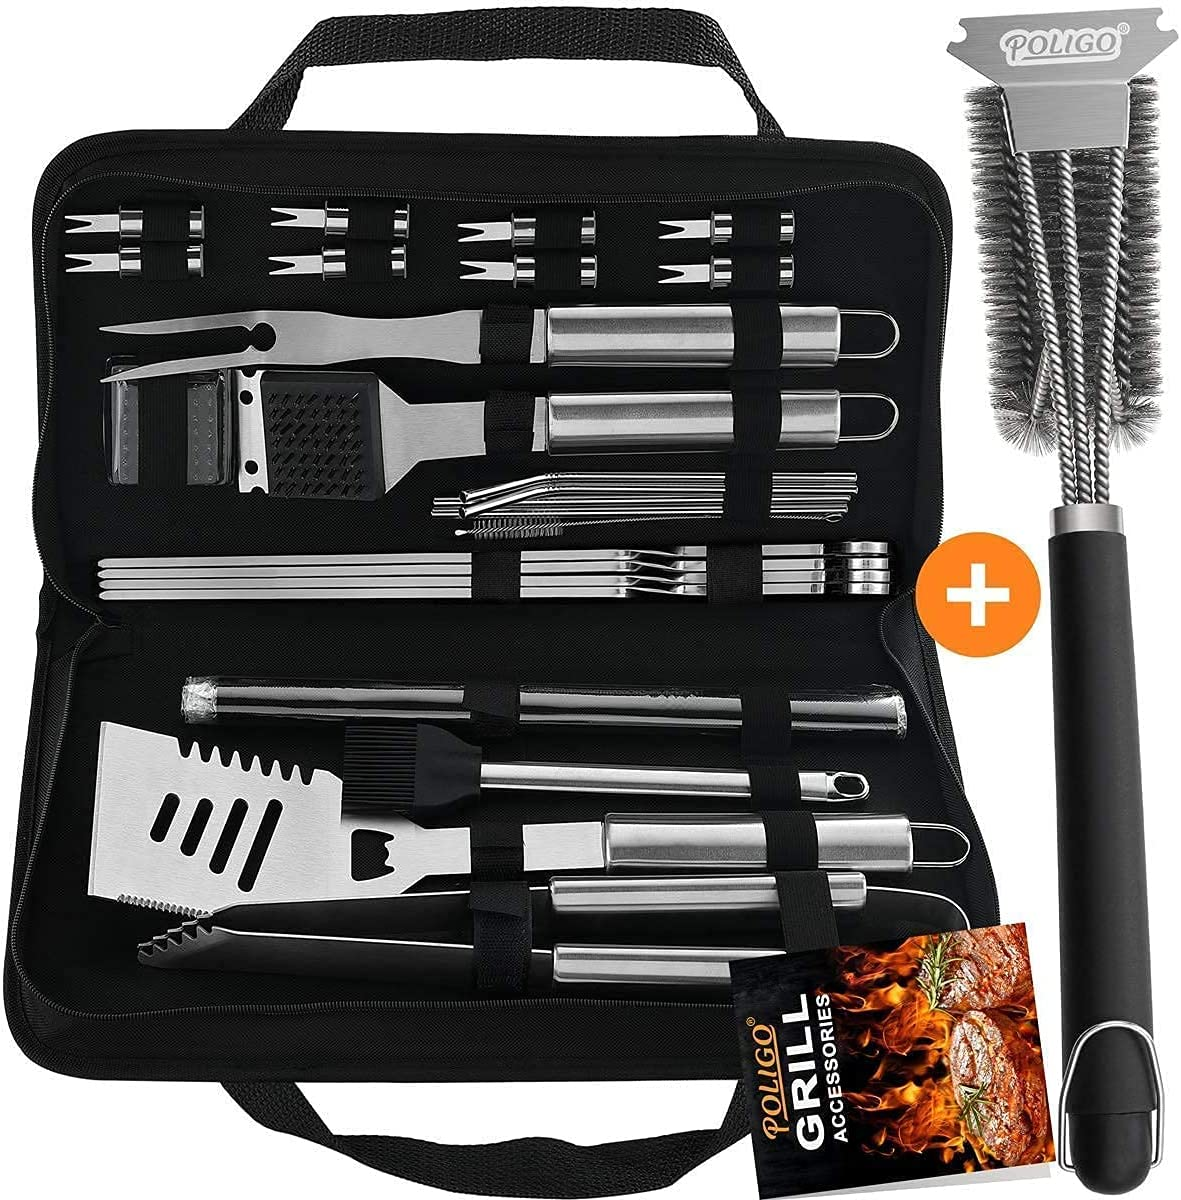 POLIGO 26PCS Cheap mail order shopping New color Barbecue Grill Accessories Set Bag Storage in Bundl